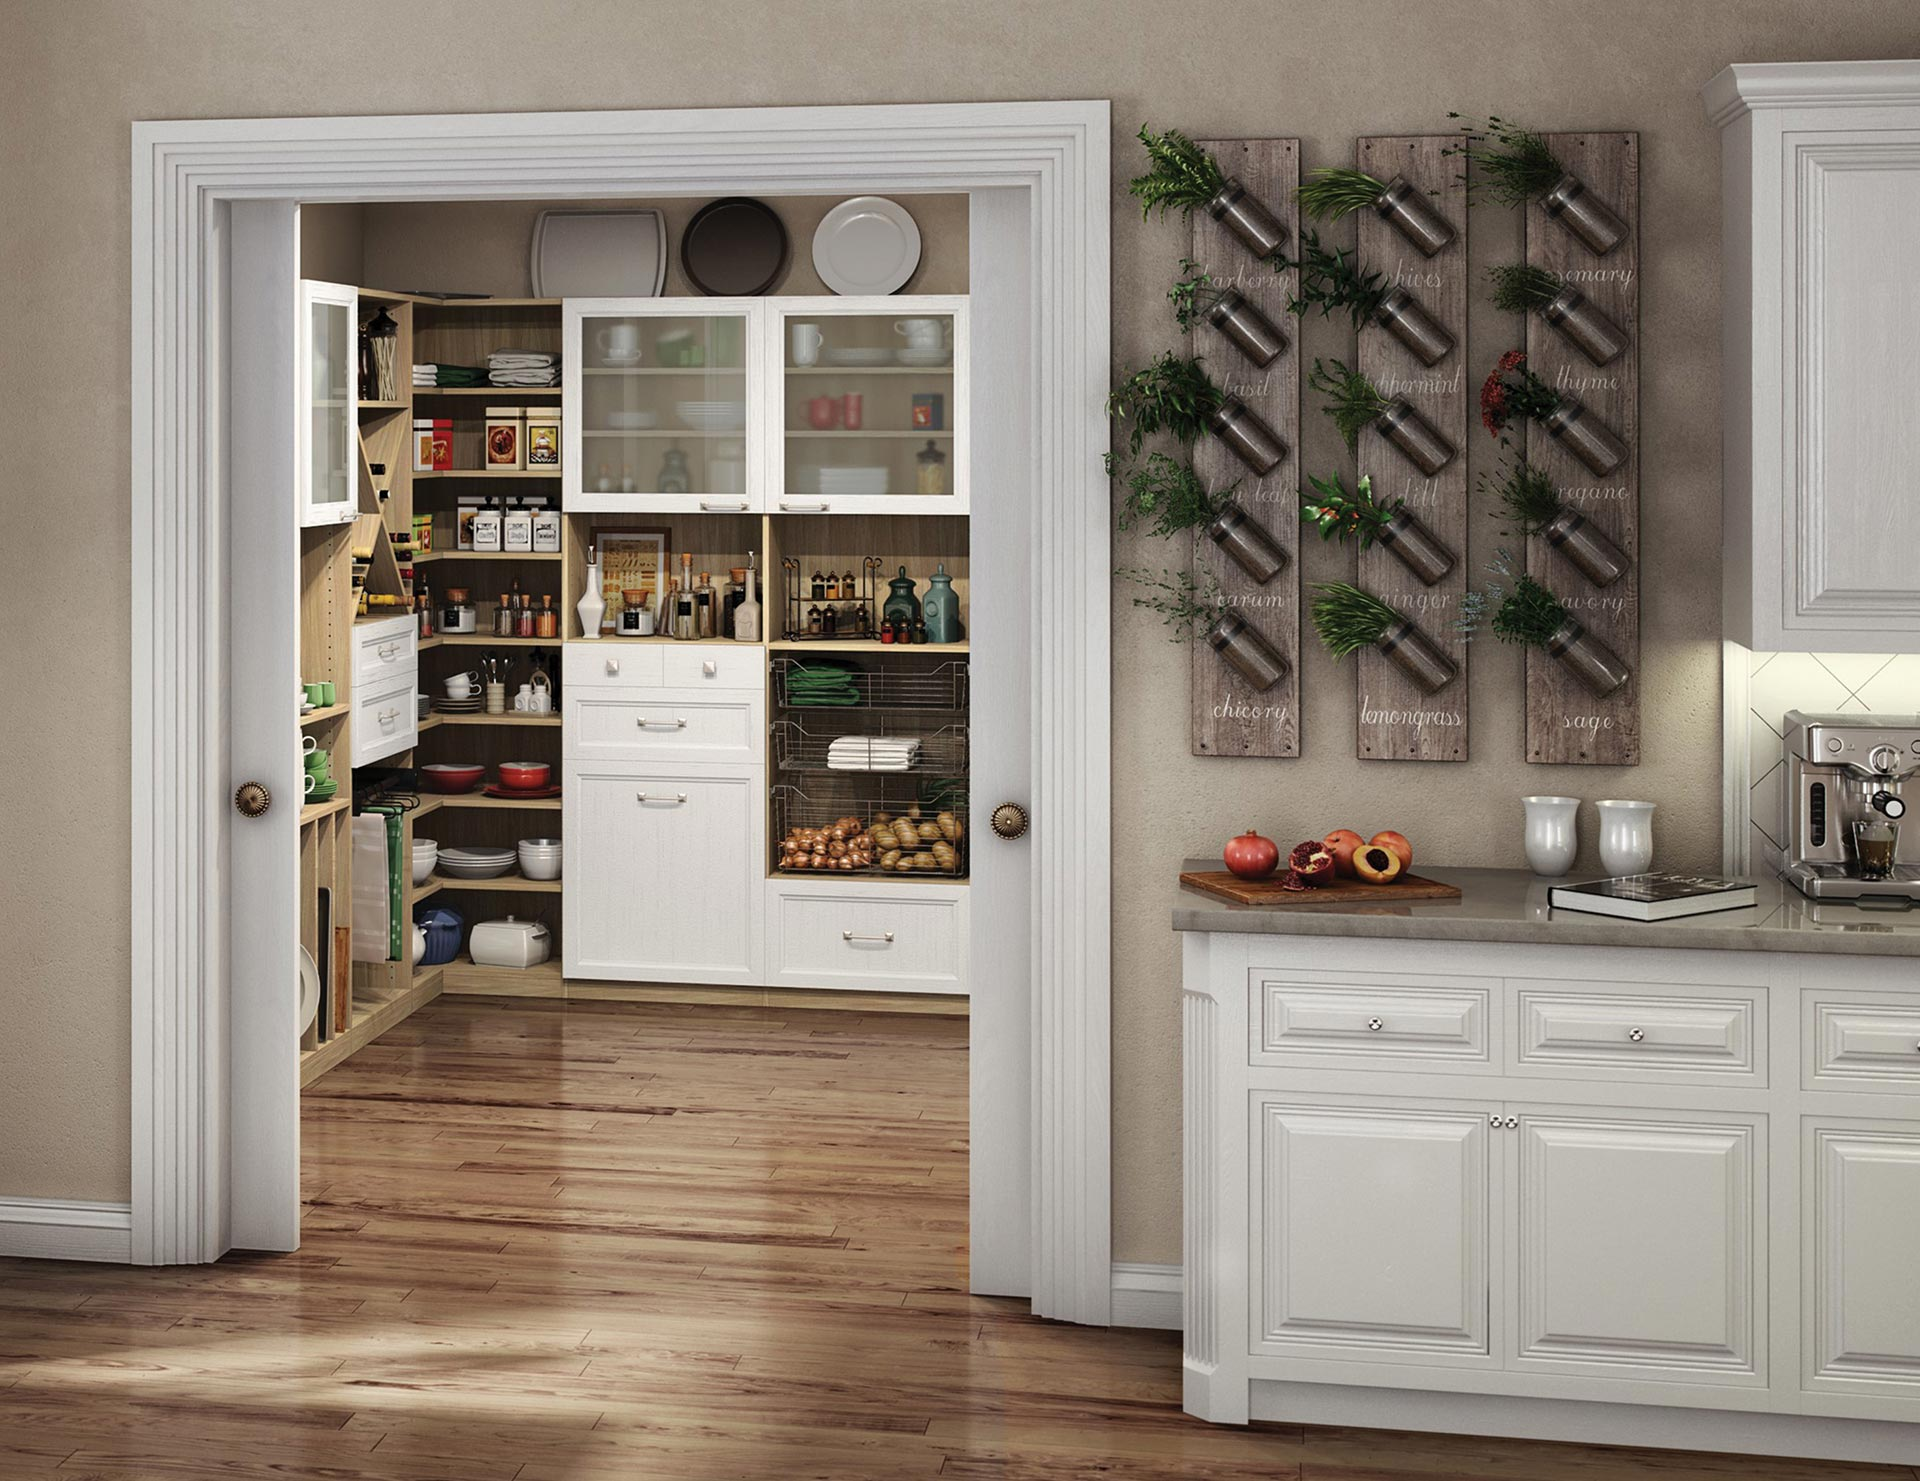 Kitchen Organizer Storage Kitchen Pantry Cabinets Kitchen Organization Ideas California